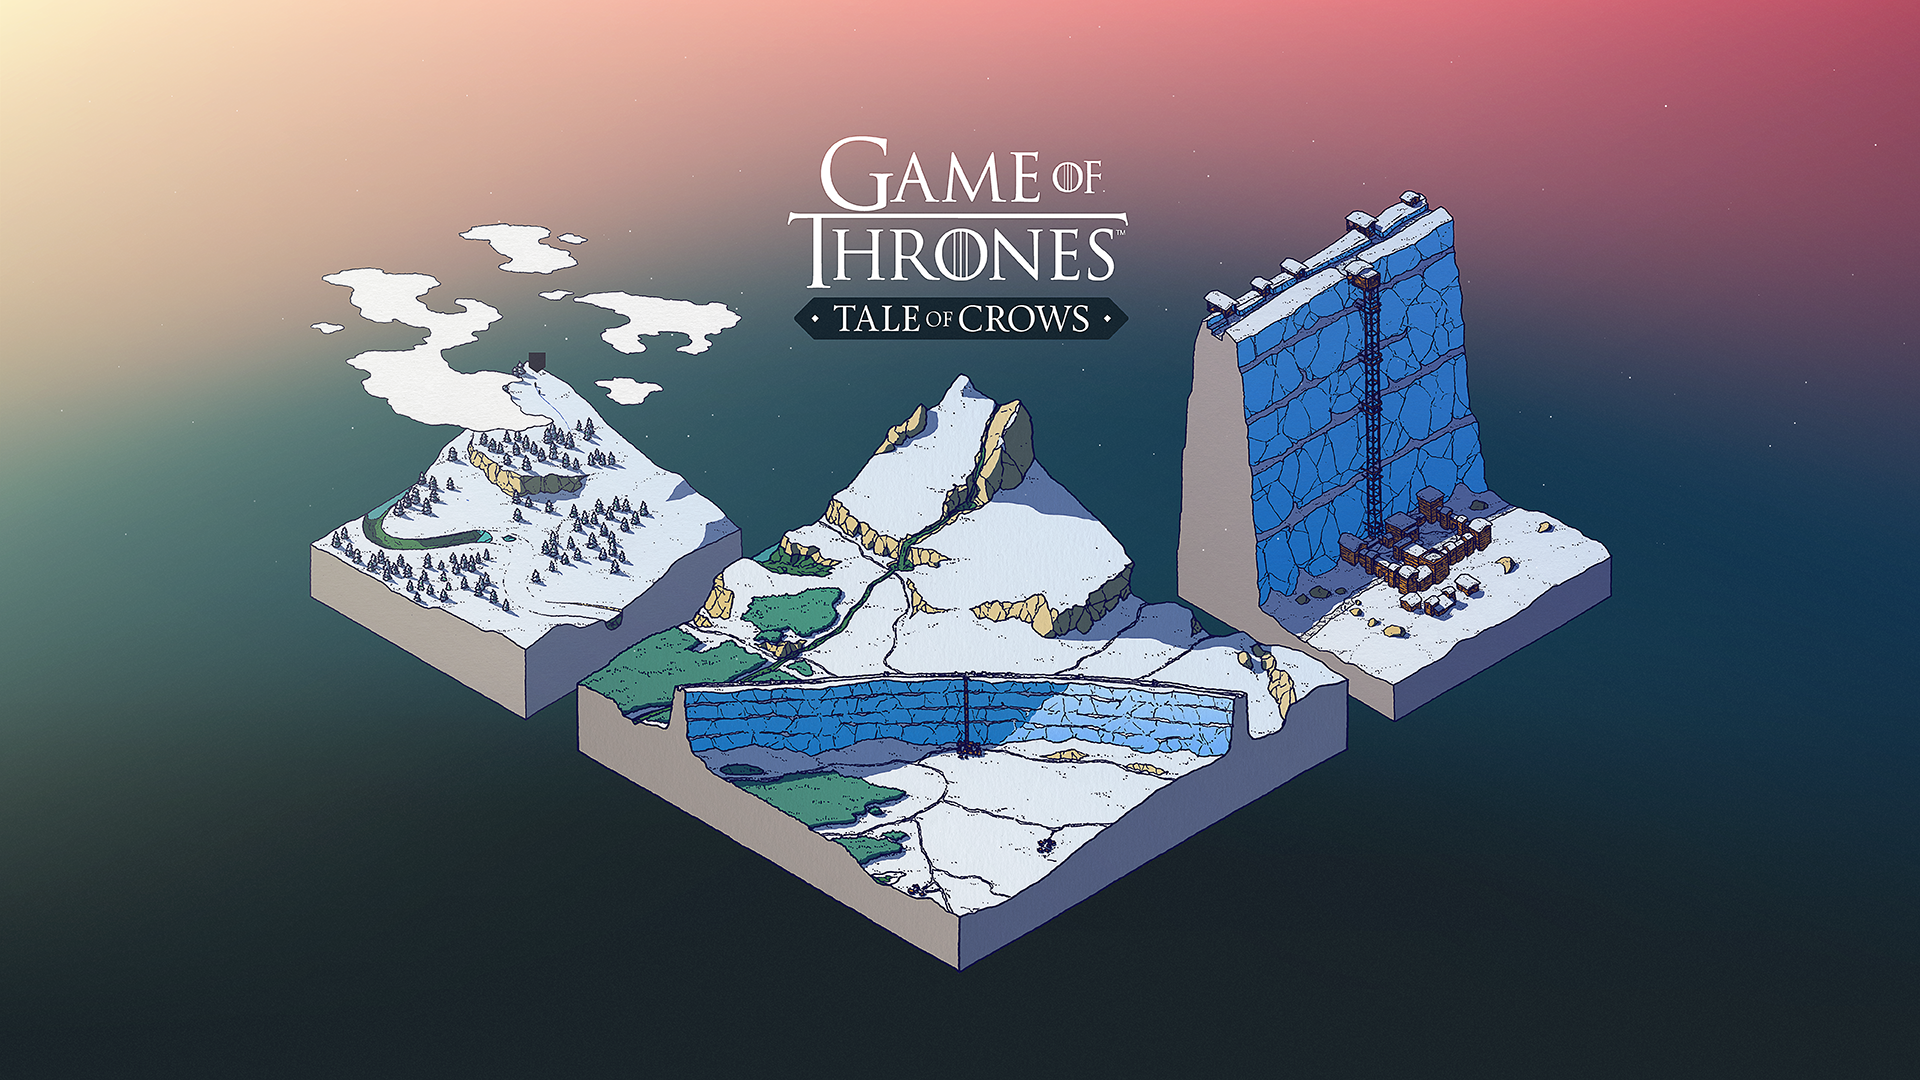 'Game of Thrones: Tale of Crows' from Devolver Digital and That Silly Studio Is This Week's Apple Arcade Release and It Is Out Now